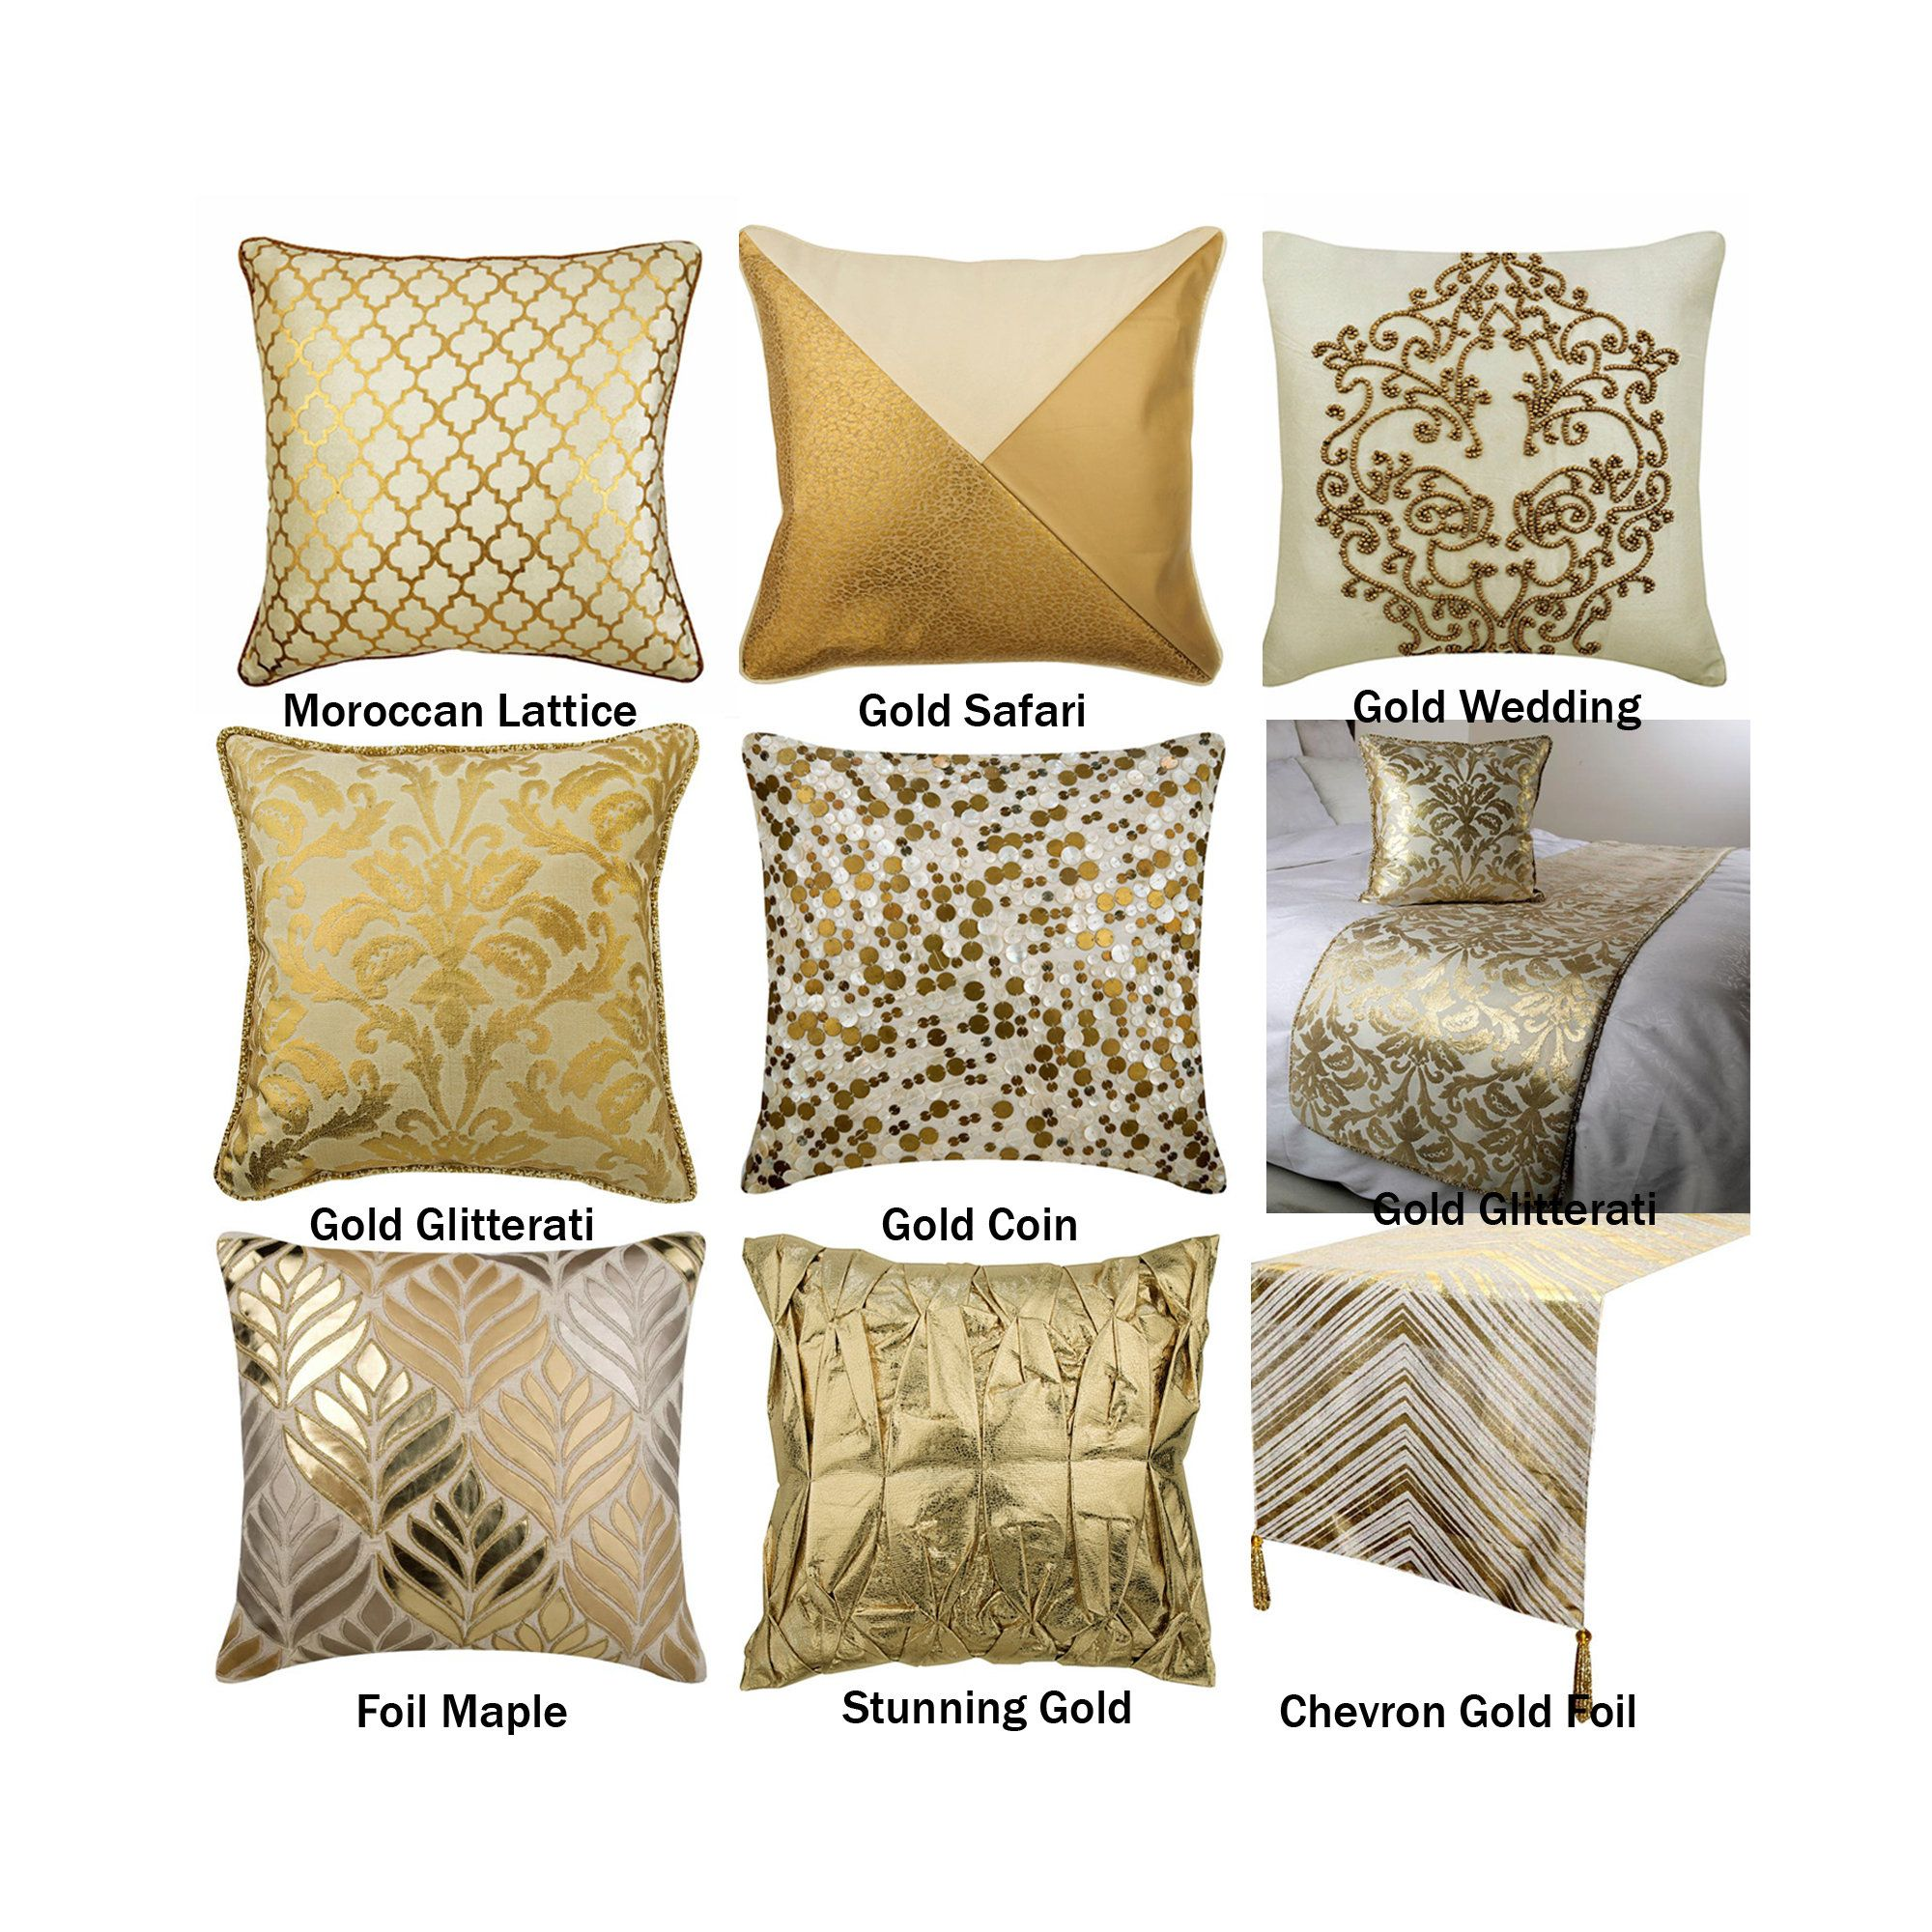 The Gold Collection Pillow Covers Decorative Throw Pillow Etsy In 2020 Pillows Decorative Throw Pillows Beige Throw Pillows